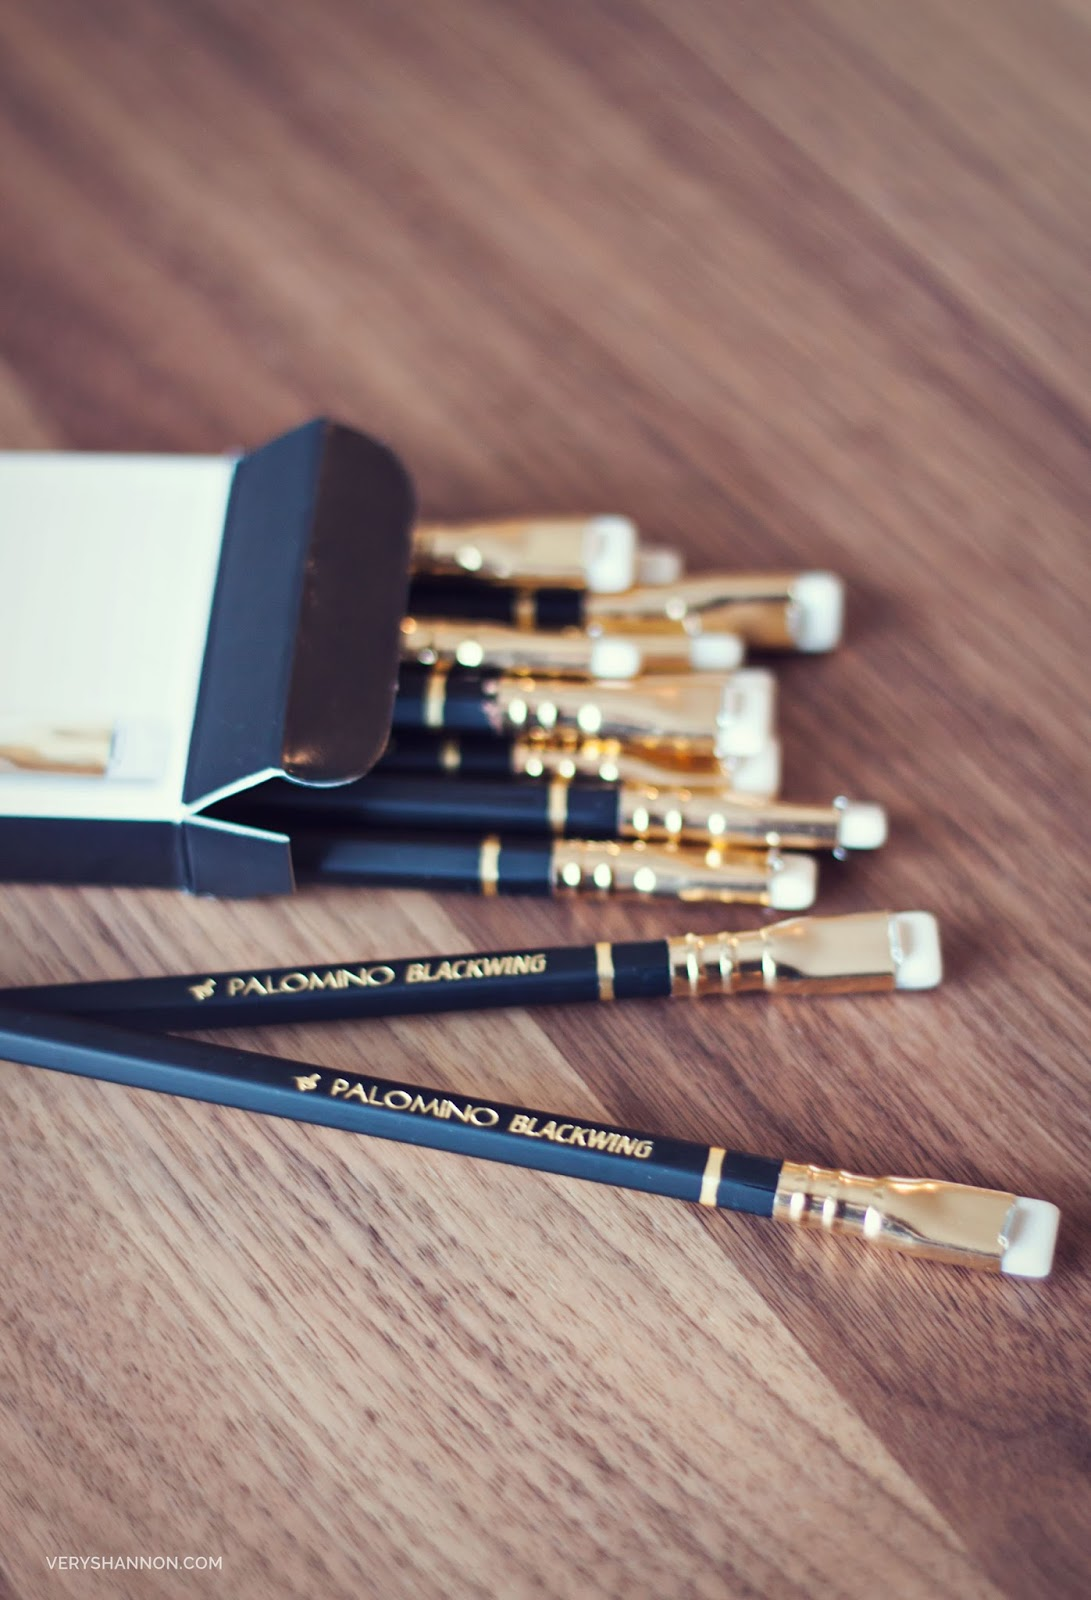 Palomino Blackwing Pencels - Making Ourselves on VeryShannon #makingourselves